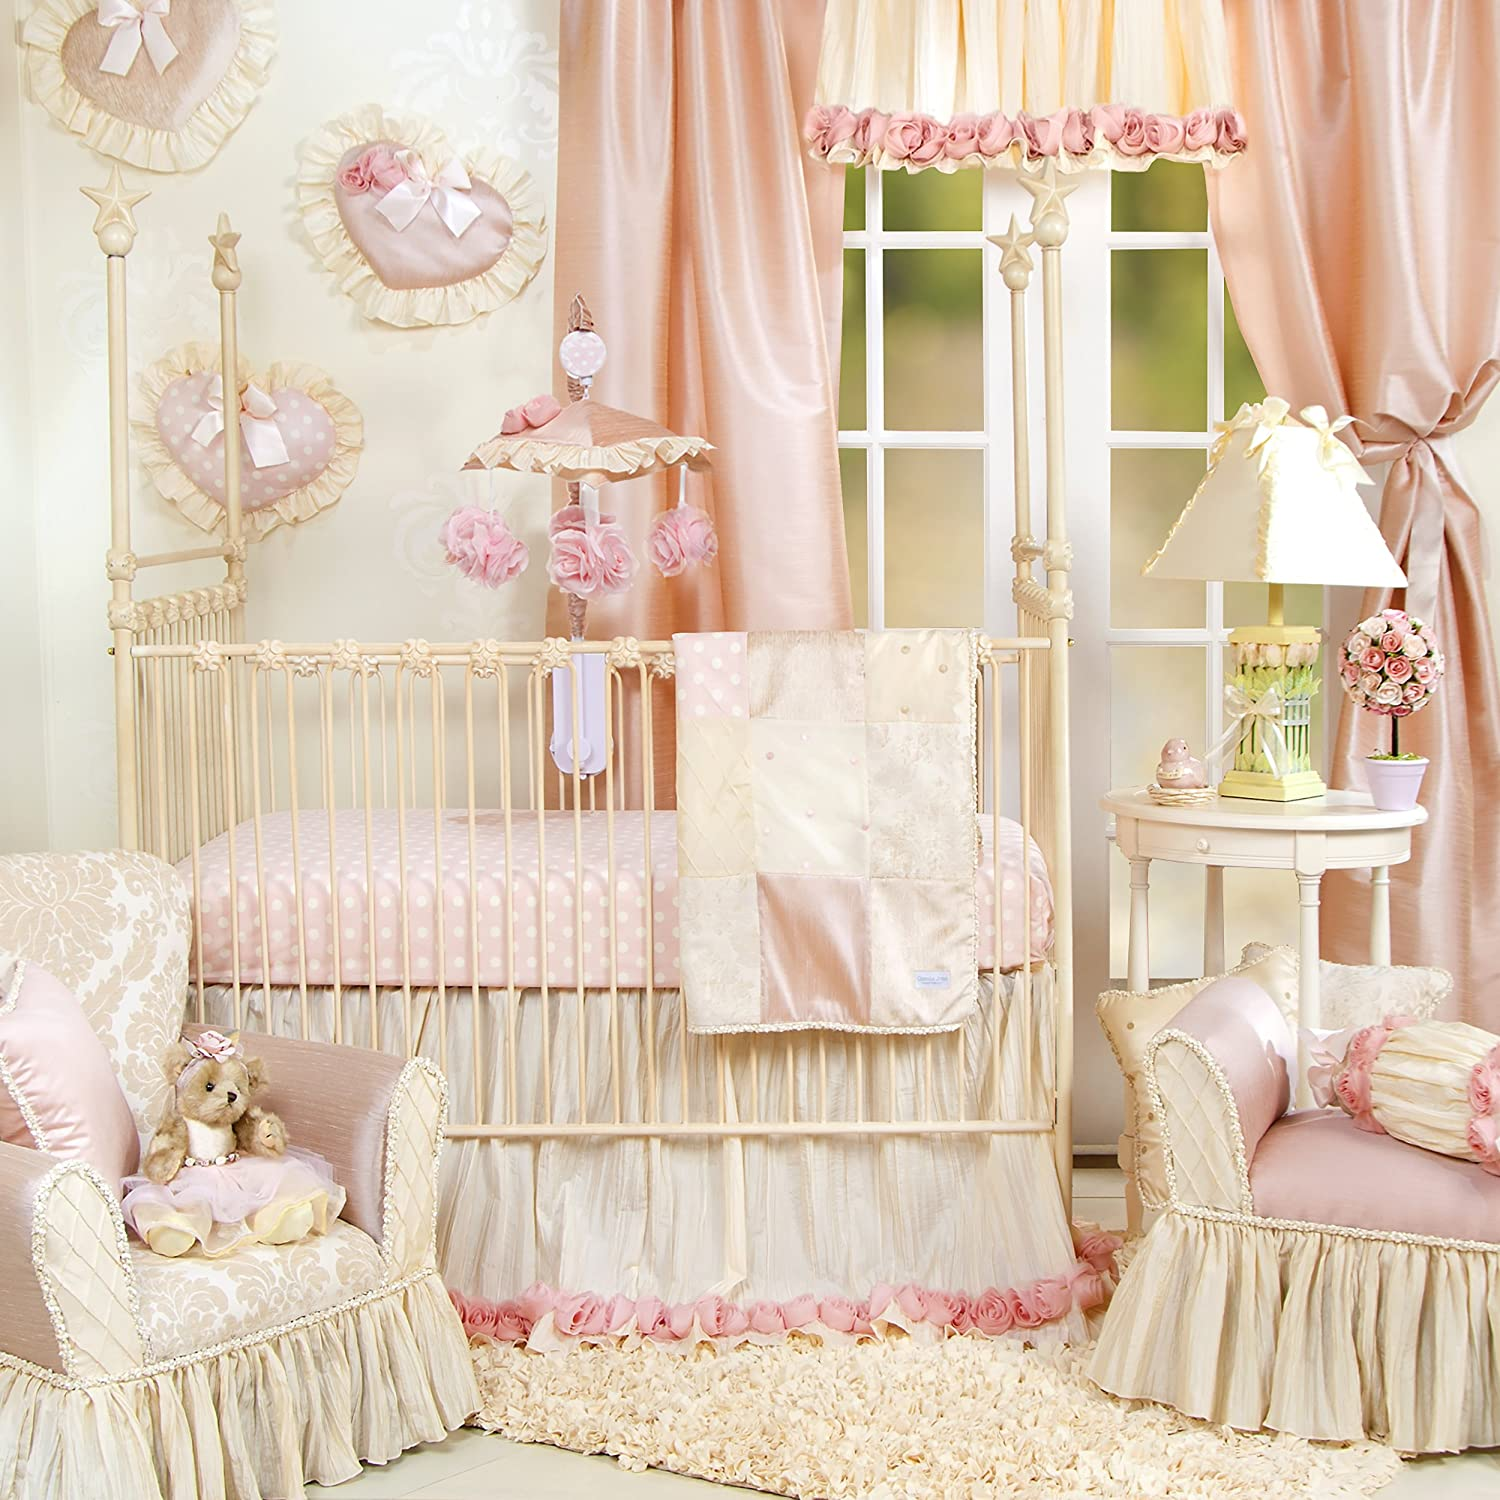 Crib Bedding Set by Glenna Jean | Baby Girl Nursery + Hand Crafted with Premium Quality Fabrics | Includes Quilt, Sheet and Bed Skirt with Pink and Ivory Accents